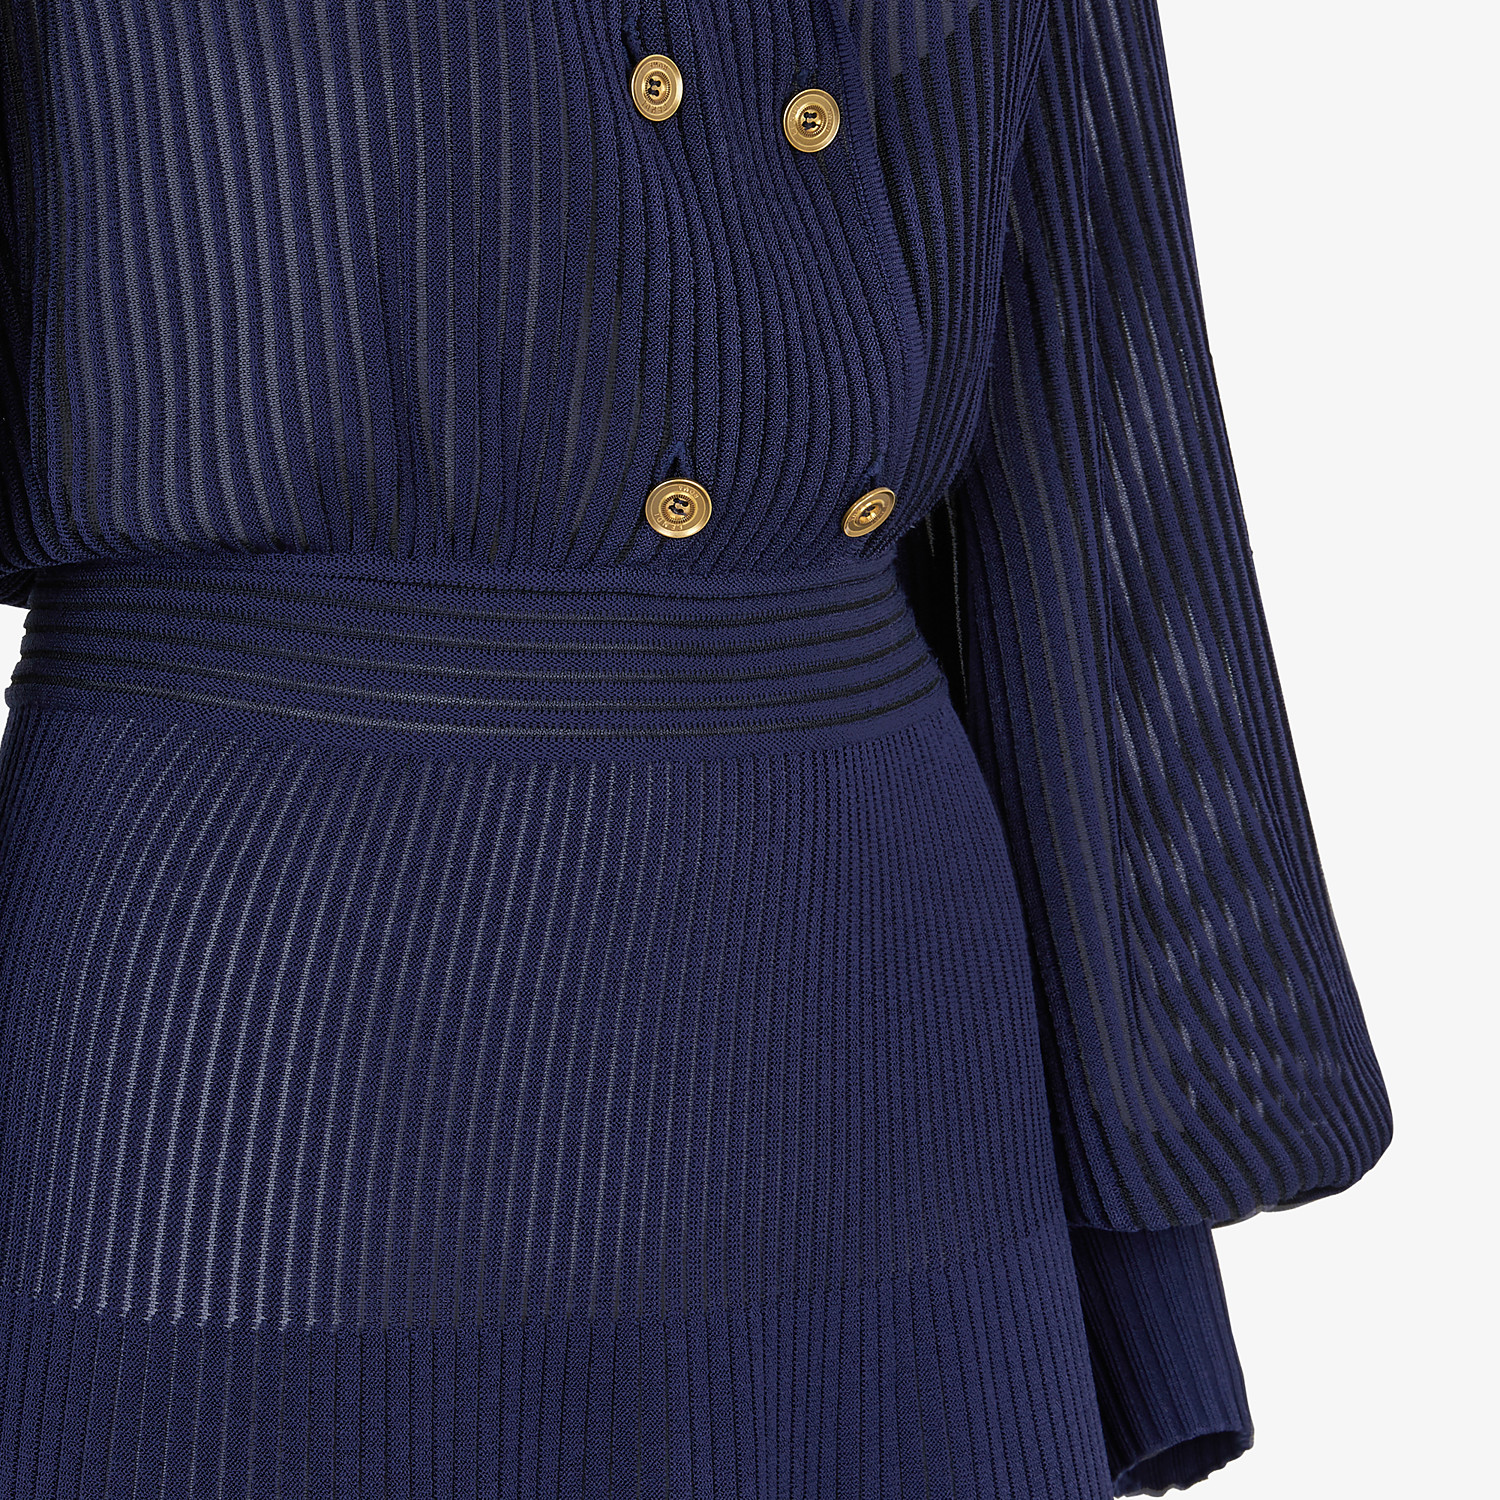 FENDI DRESS - Blue viscose dress - view 3 detail